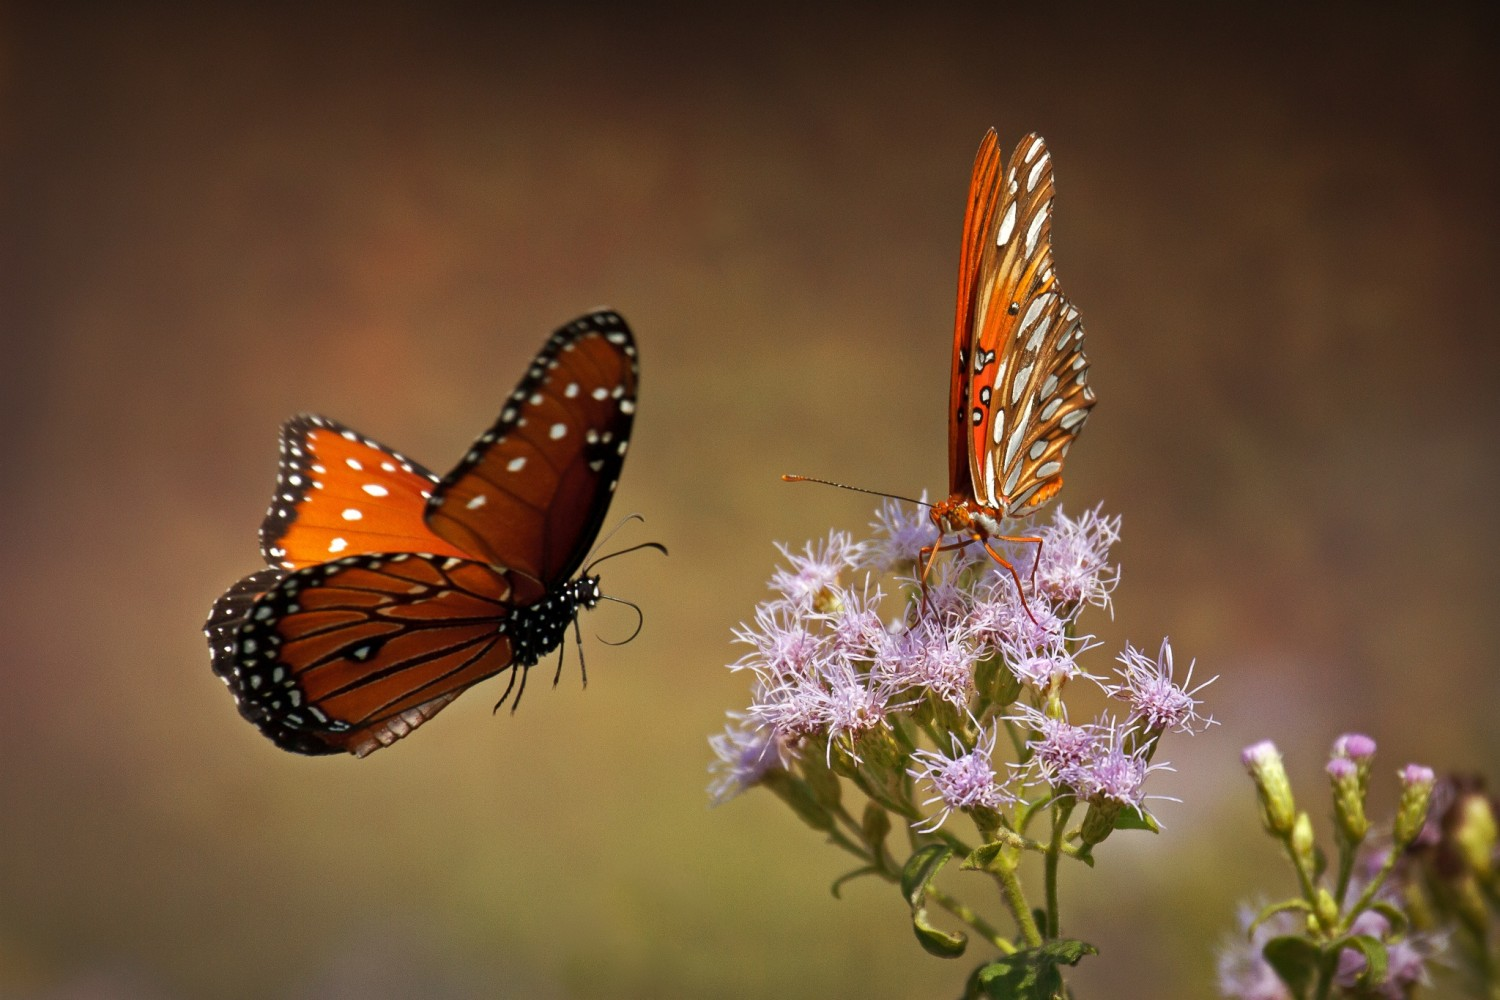 50 Breathtaking Photographs of Butterflies